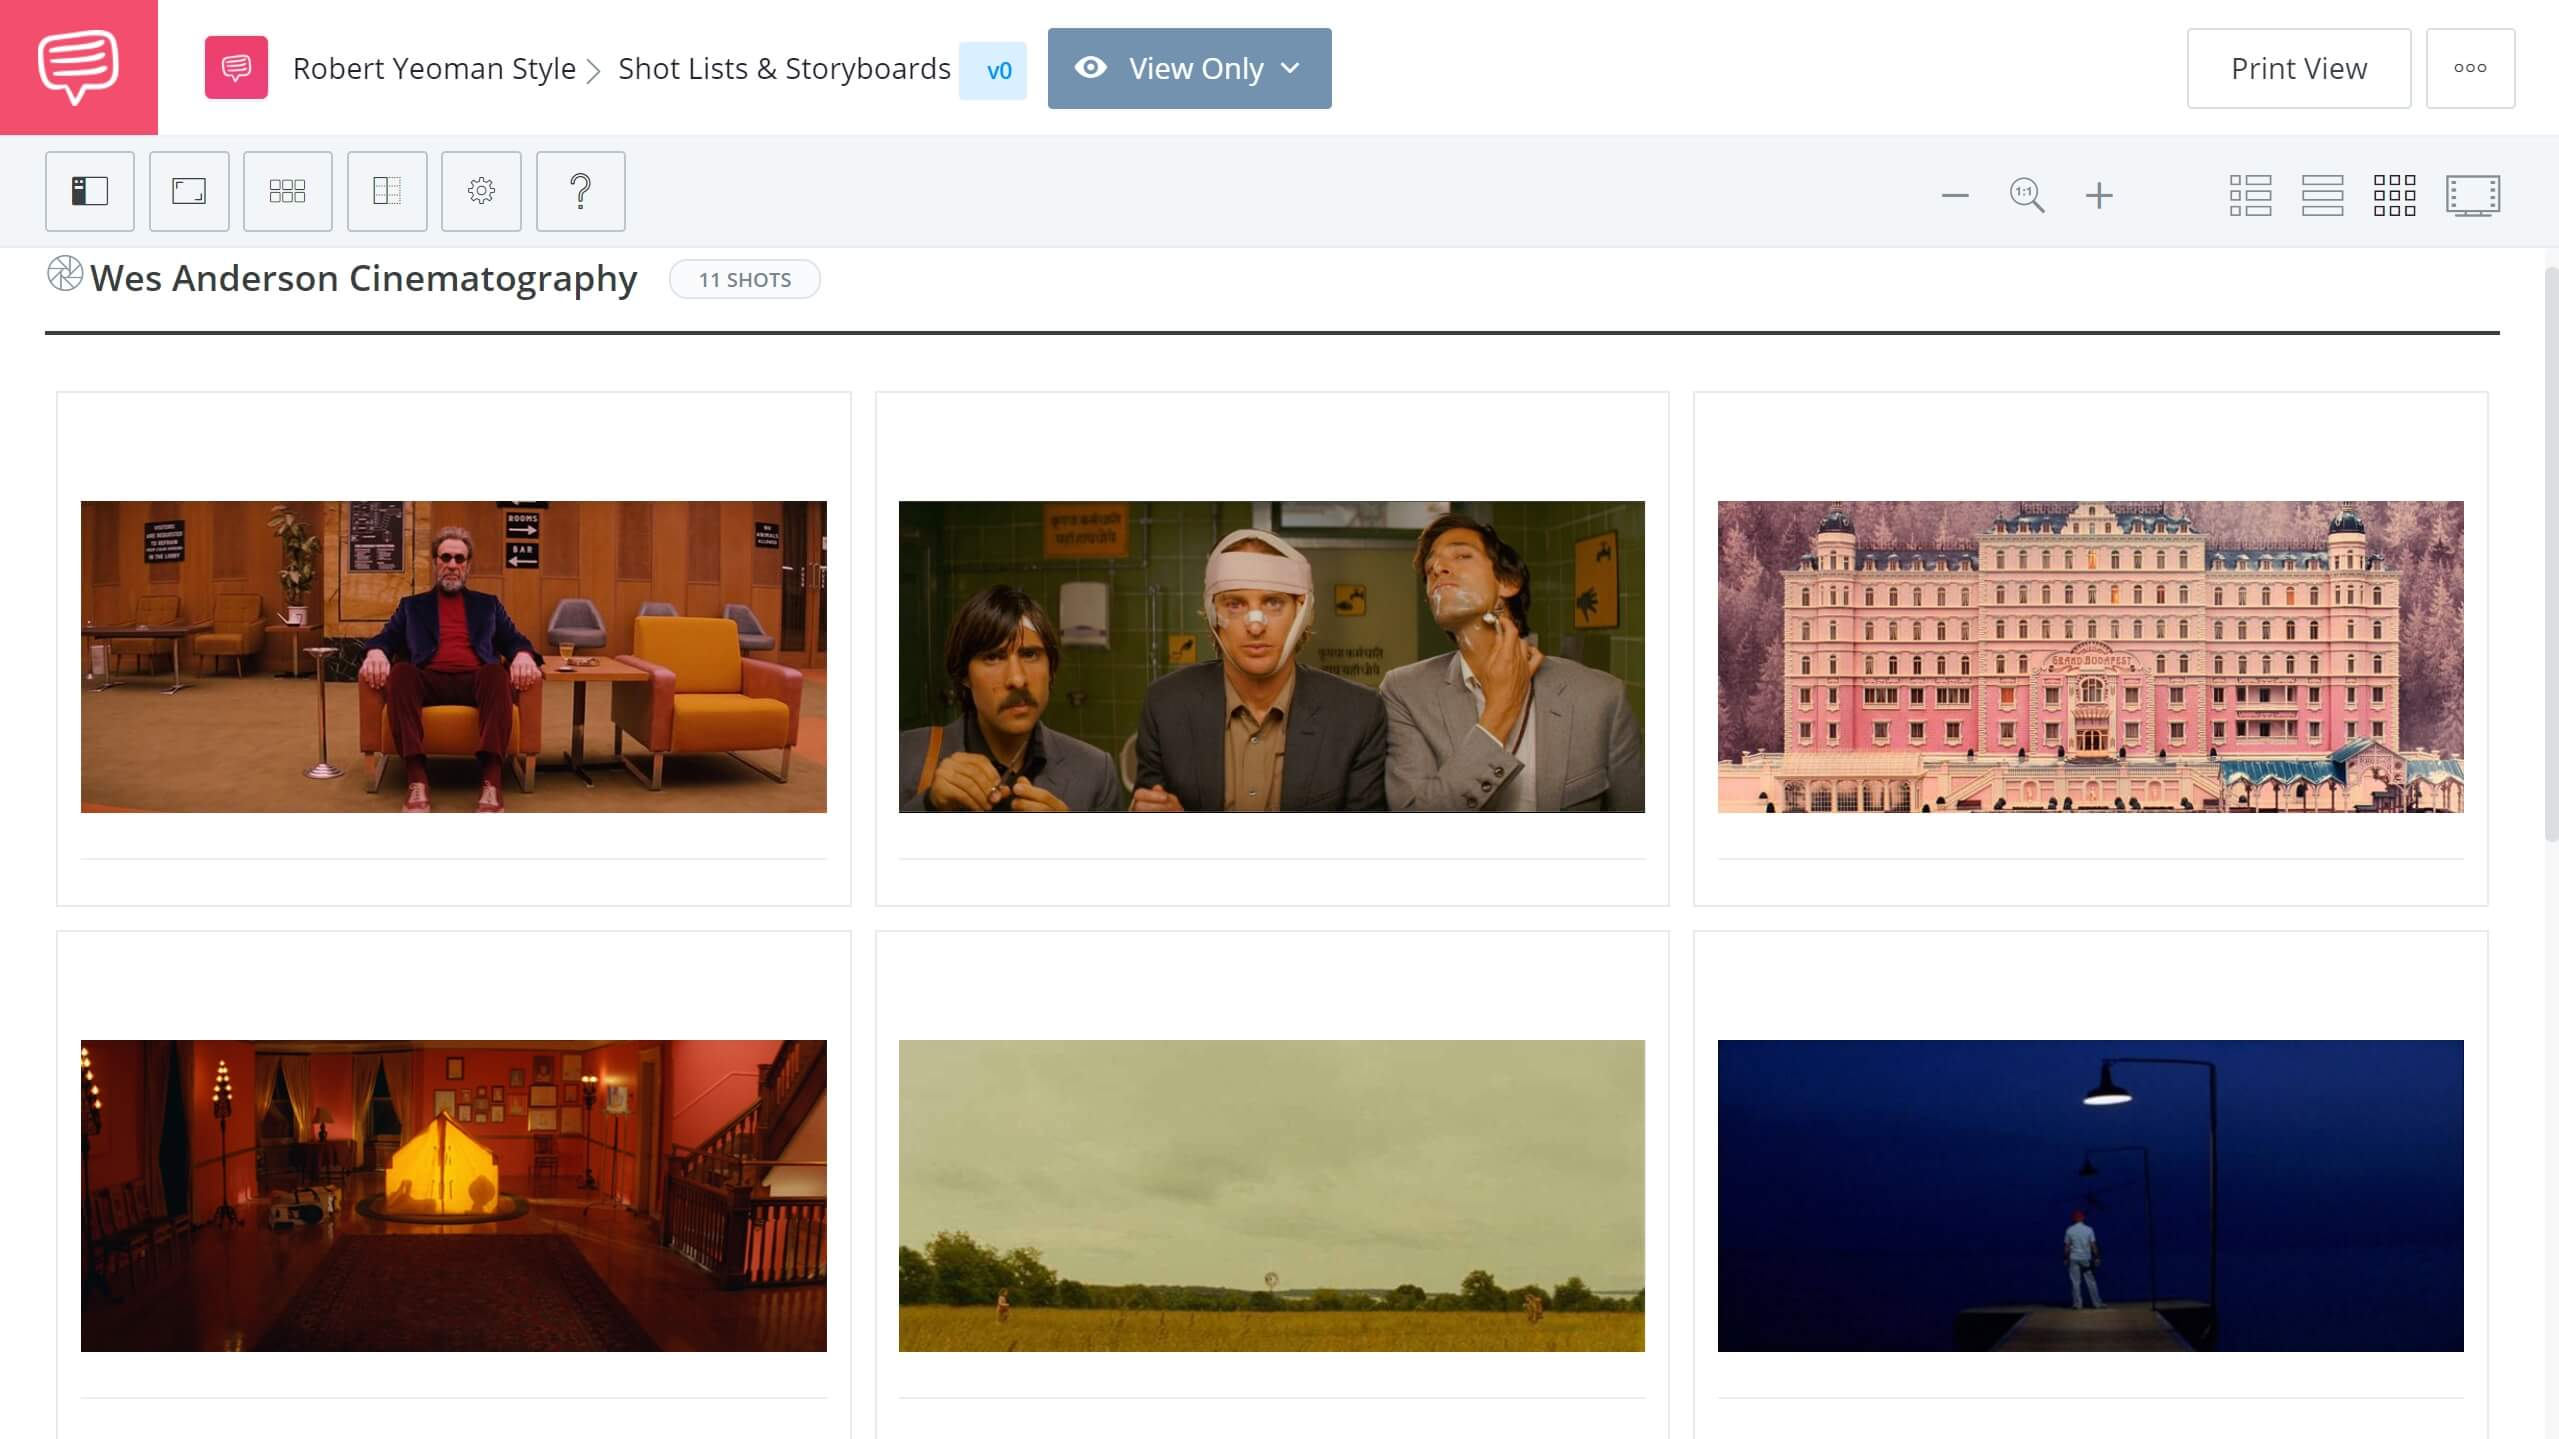 Robert Yeoman Style Wes Anderson Cinematography Storyboard StudioBinder Shot Listing Software